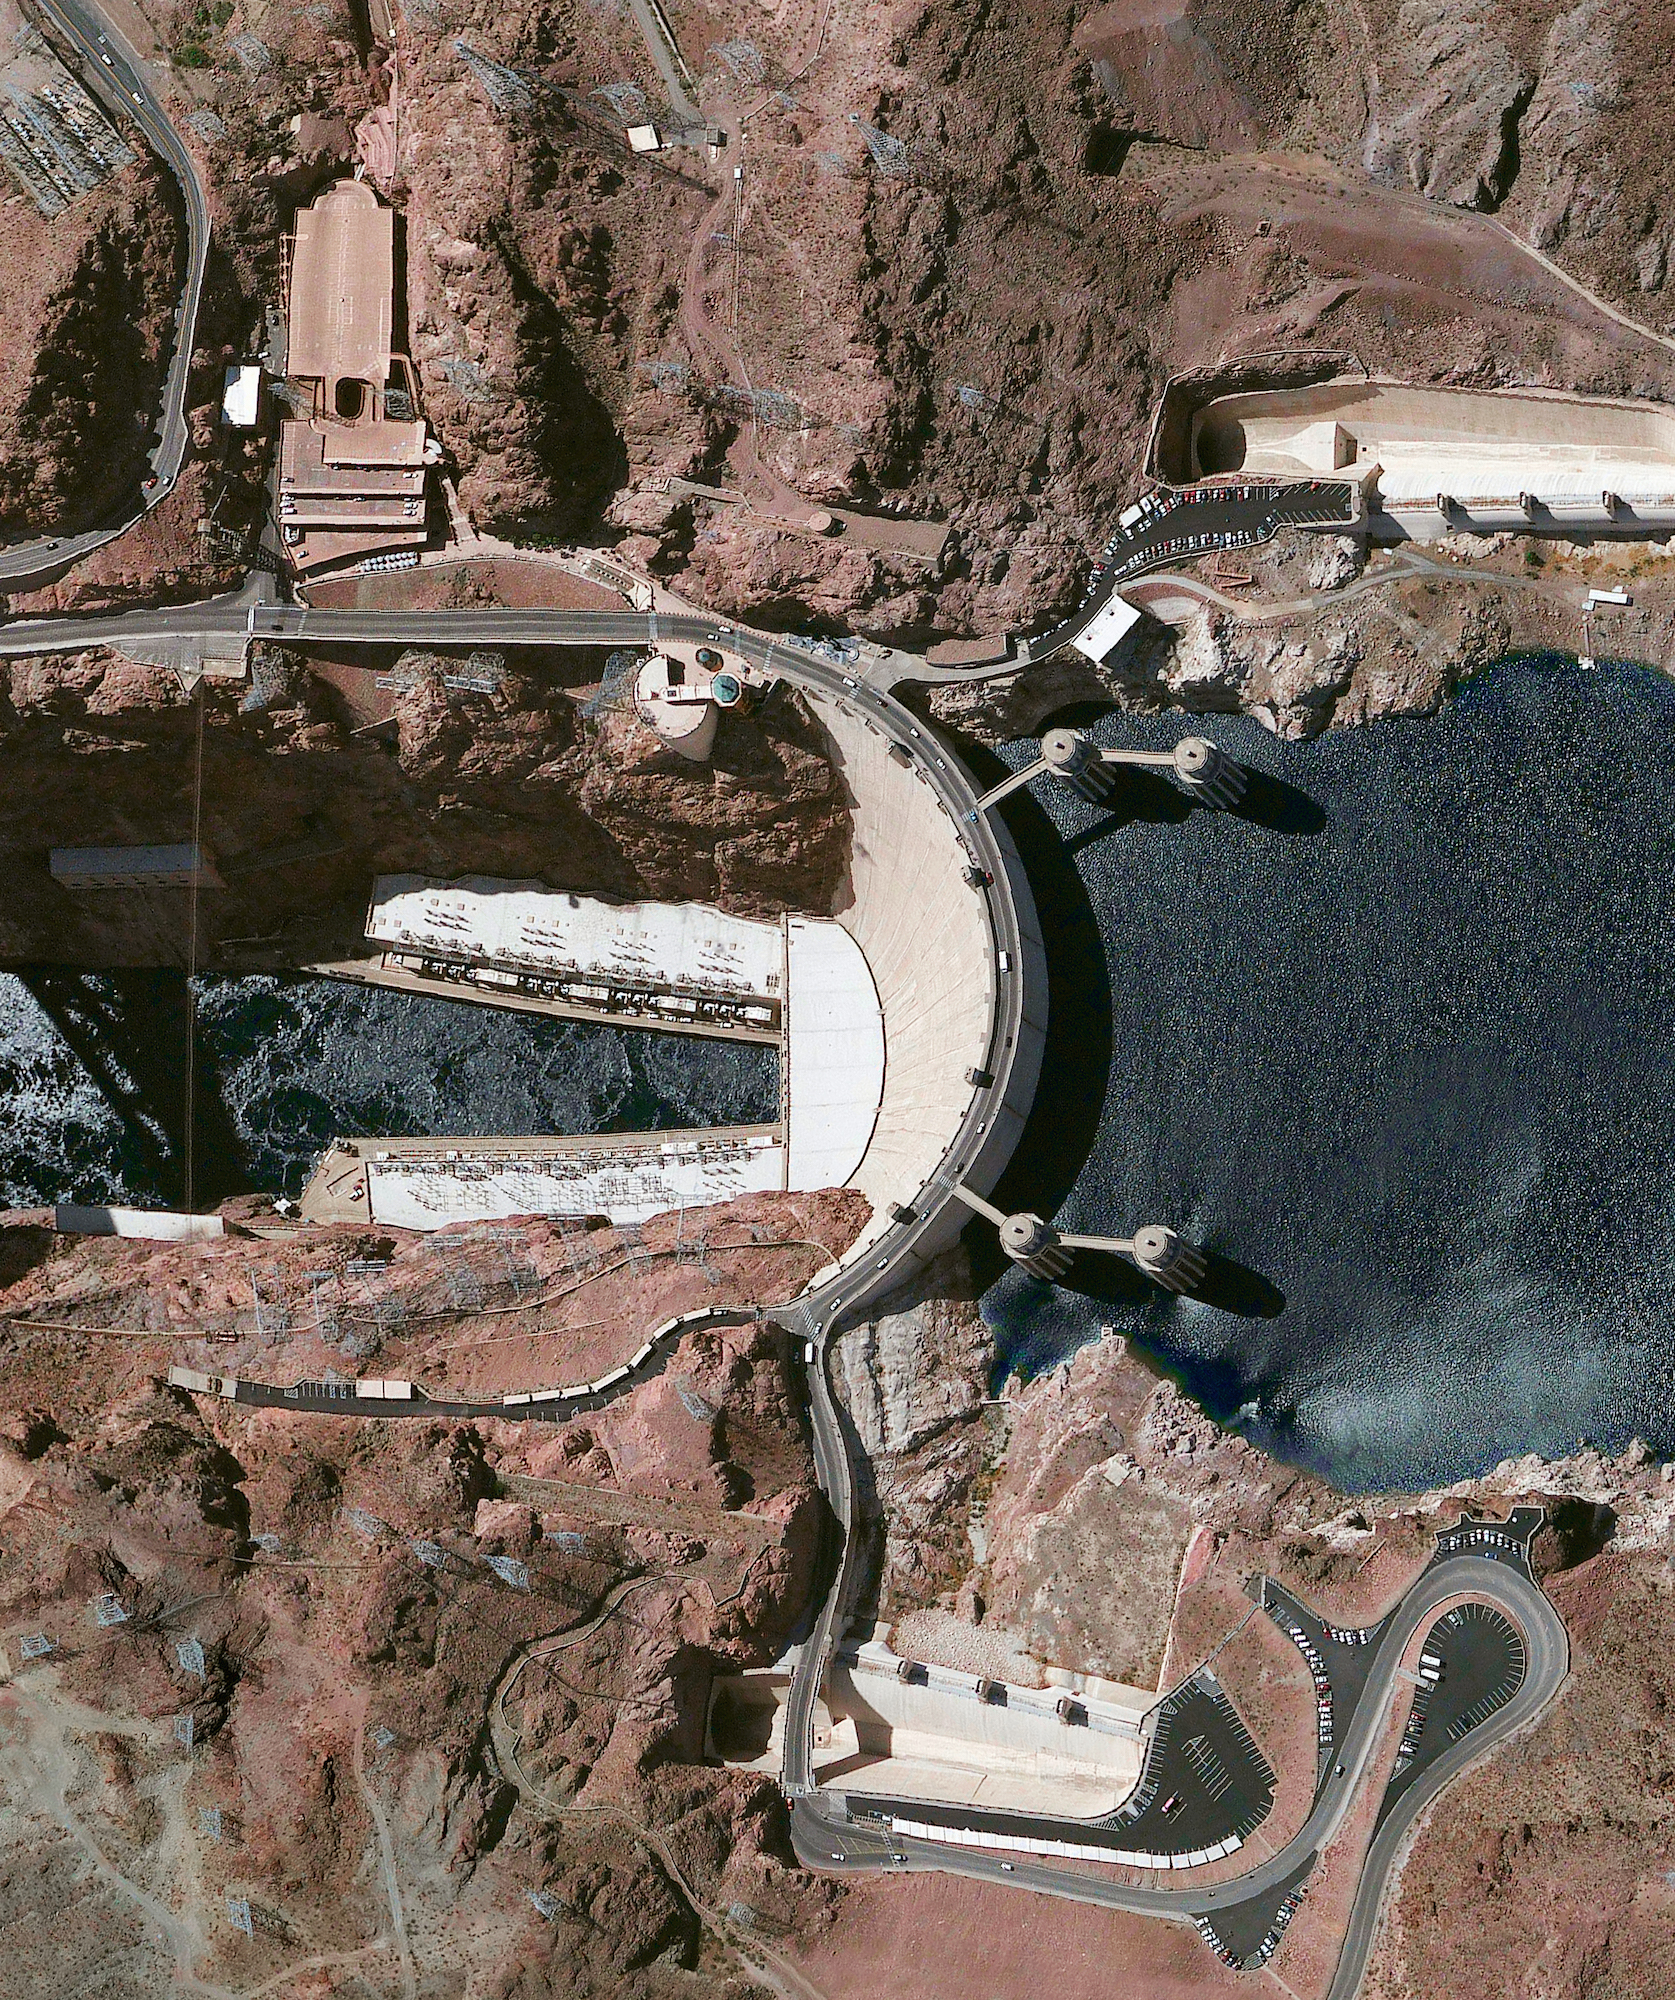 2/16/2016   Hoover Dam   Nevada /Arizona, USA  36°0′56″N 114°44′16″W    Hoover Dam is a 726-foot high, 1,244-foot wide concrete arch-gravity dam located on the Colorado River at the border of Arizona and Nevada. Constructed between 1931 and 1936 during the Great Depression, a workforce of approximately 20,000 poured a total of 4.36 million cubic yards of concrete to complete the structure. That is enough concrete to pave a two-lane highway from San Francisco to New York City.